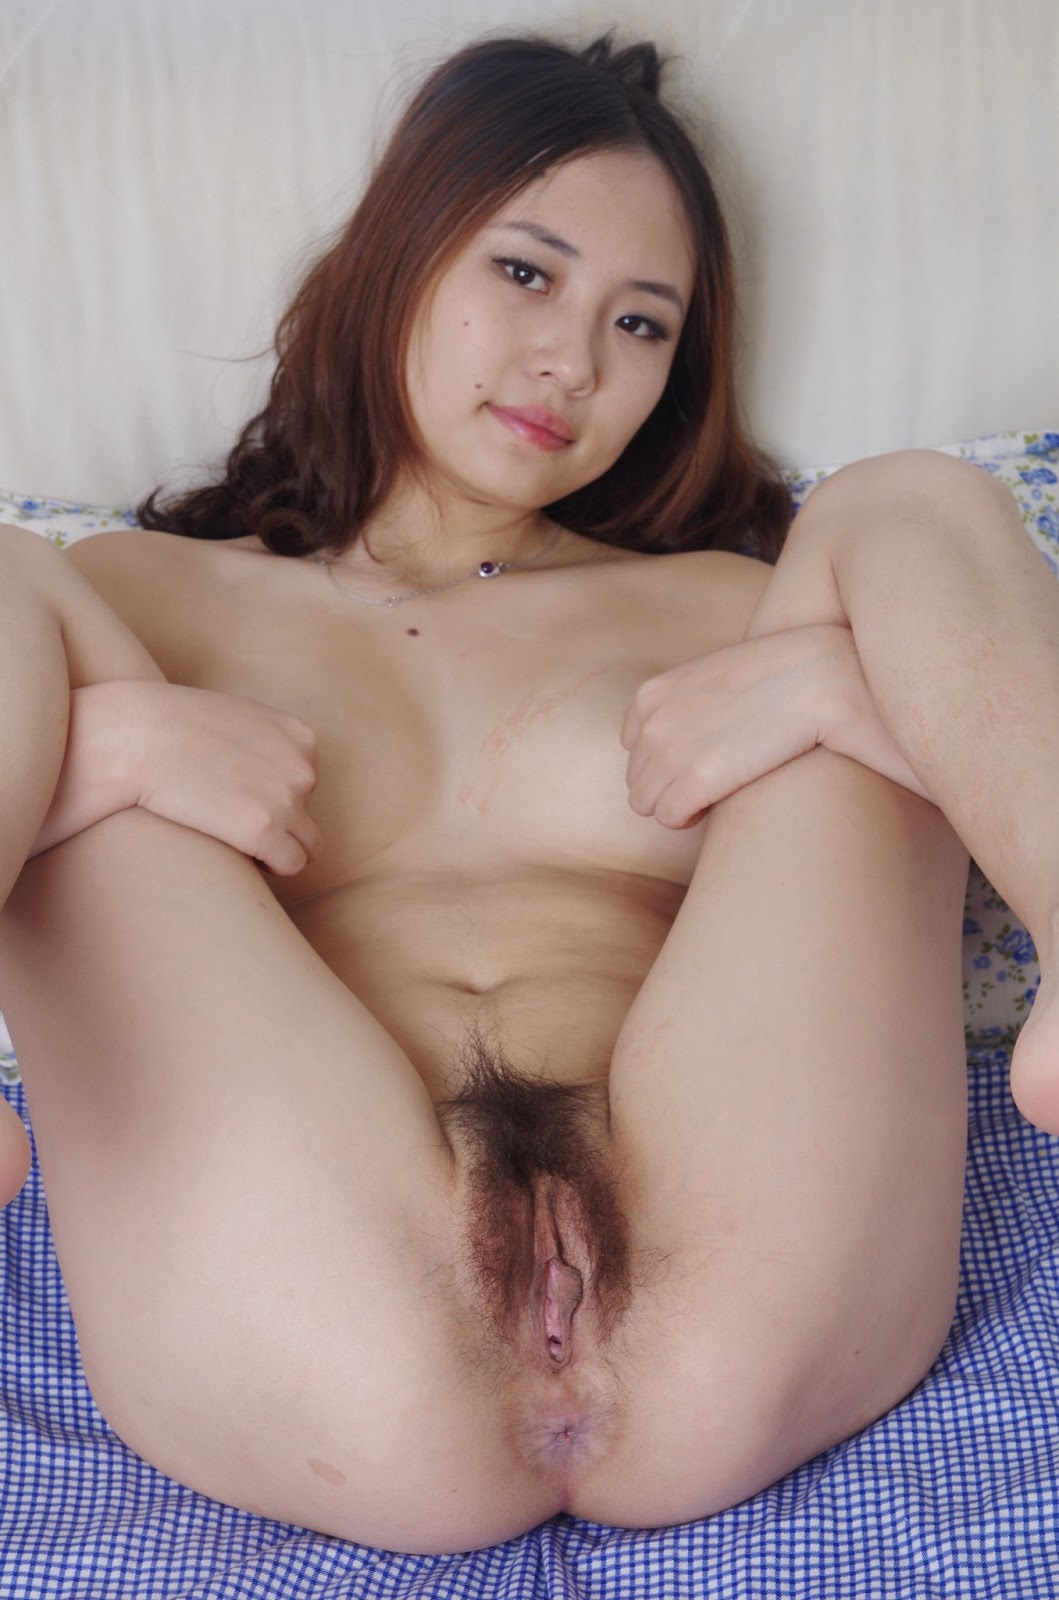 asian-nudes-video-nude-cam